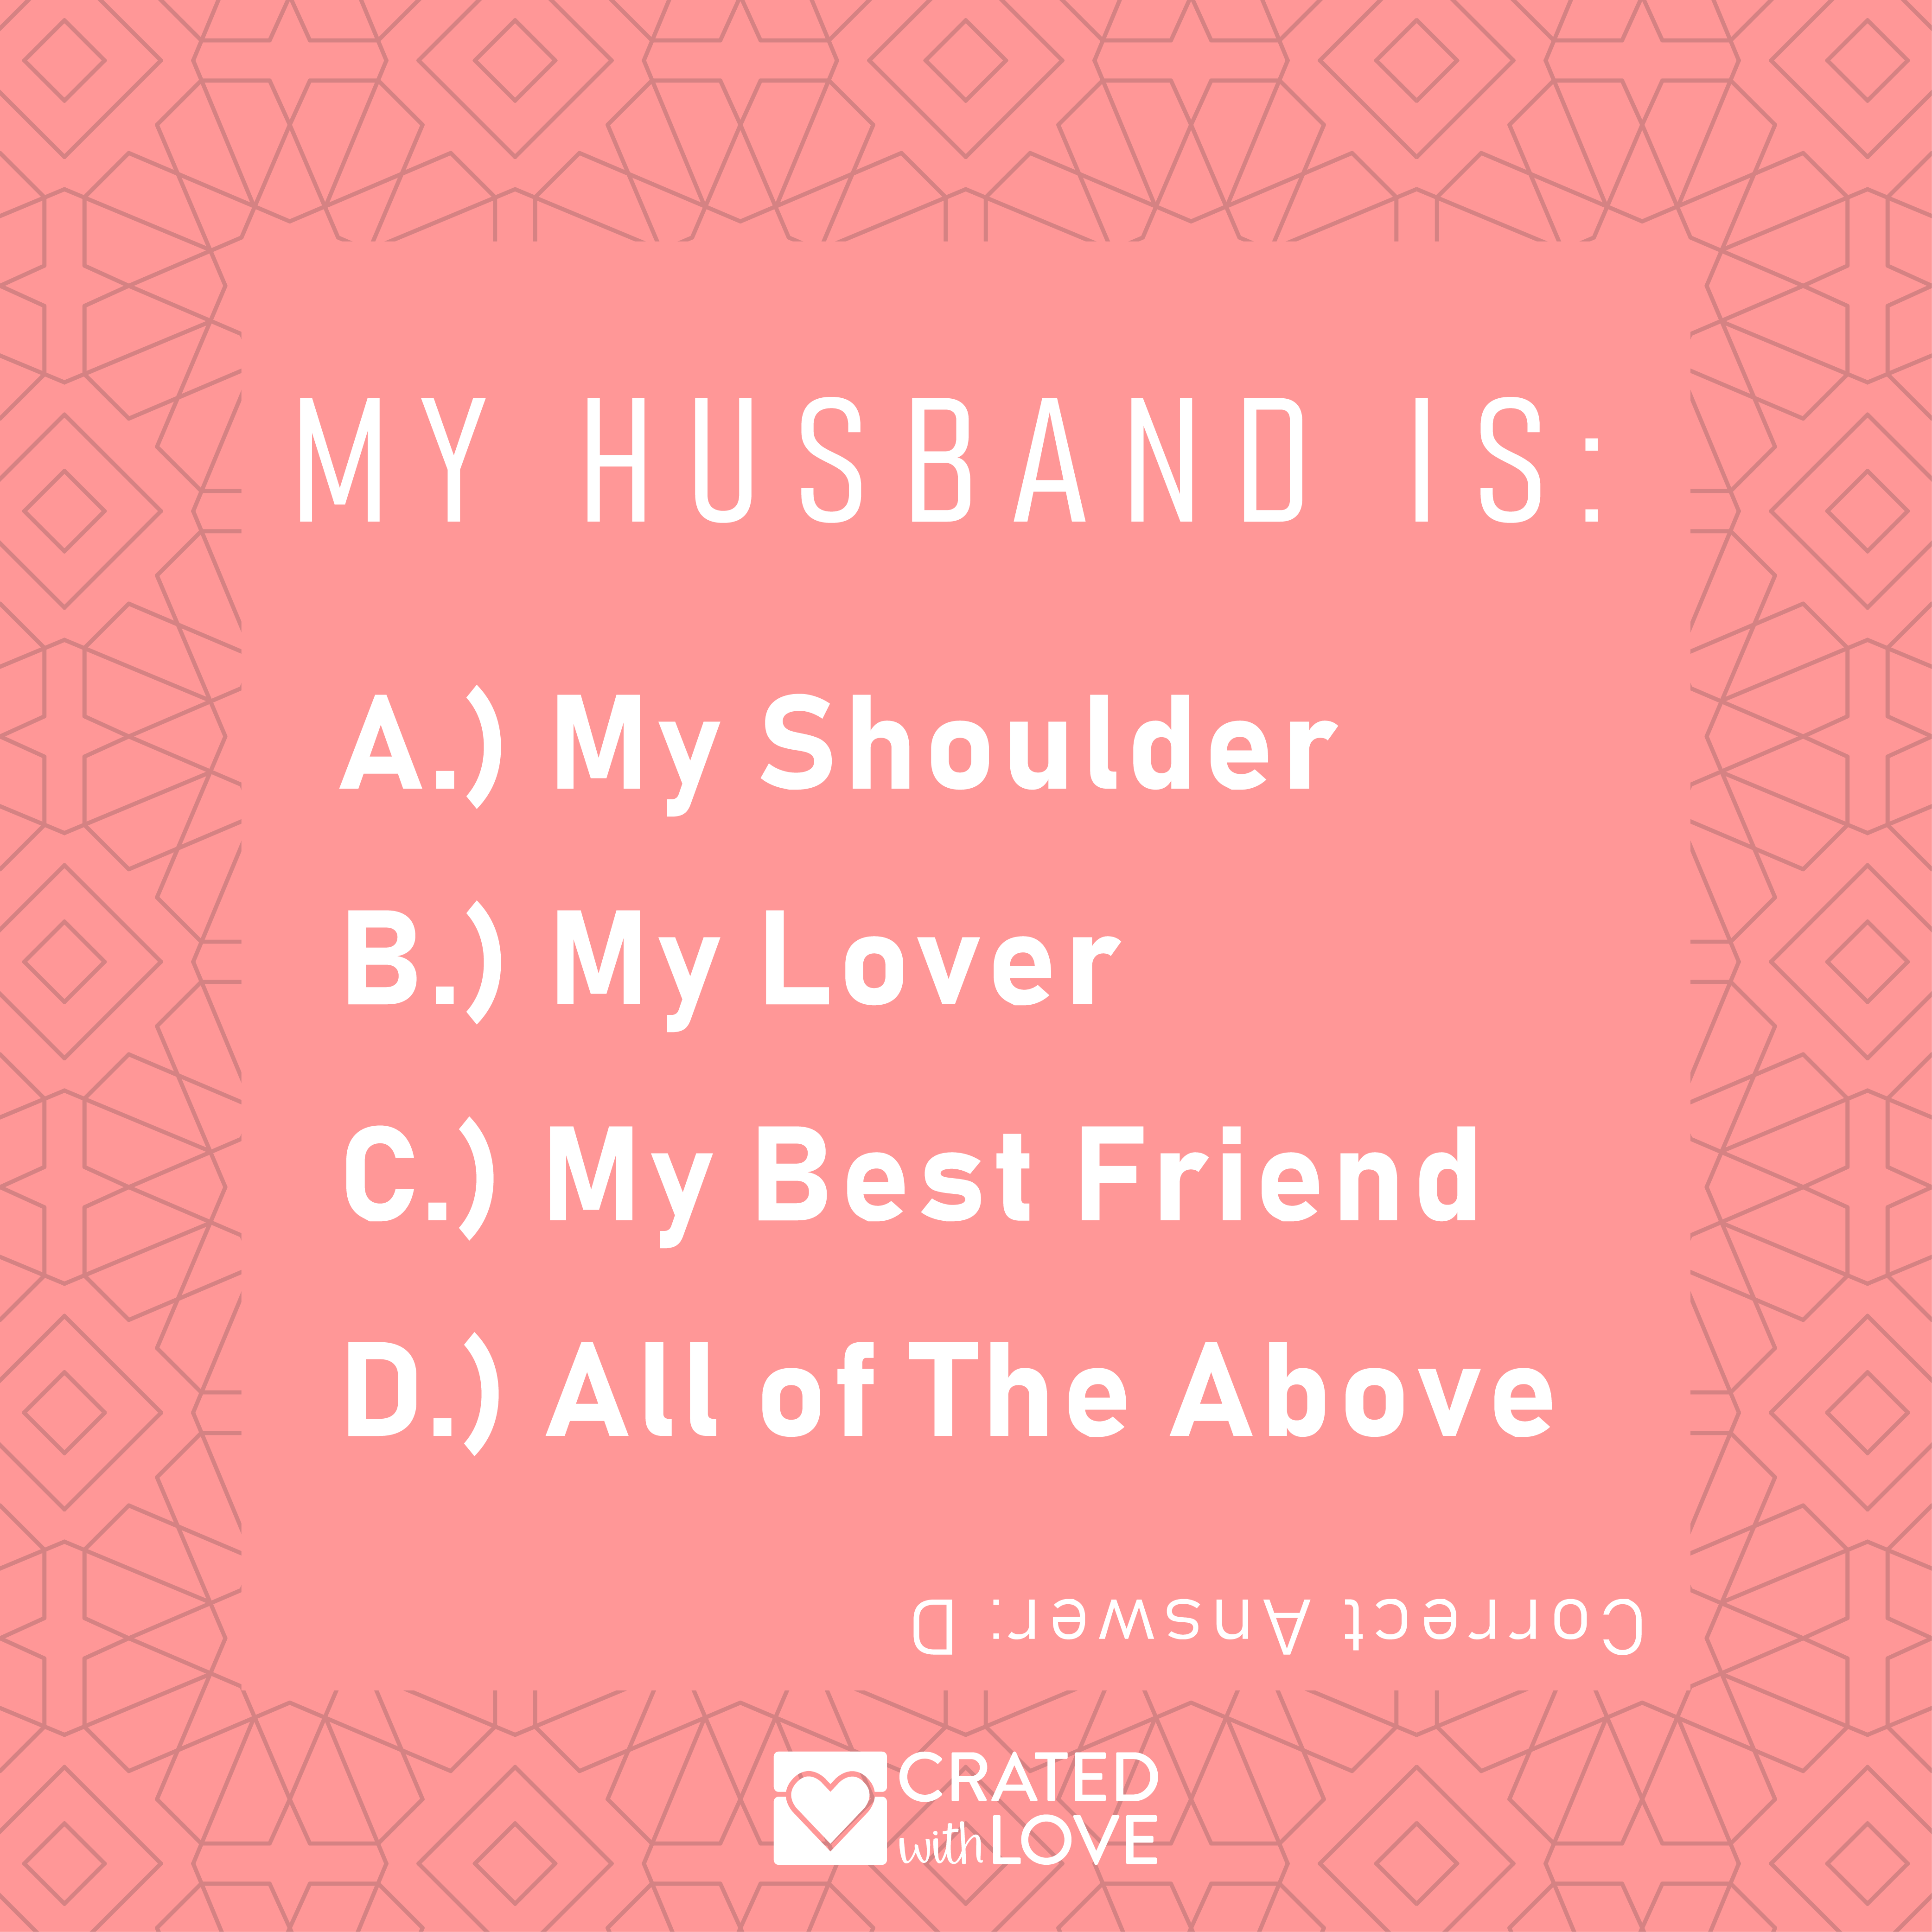 My husband is my best friend quote from Crated with Love  Husband